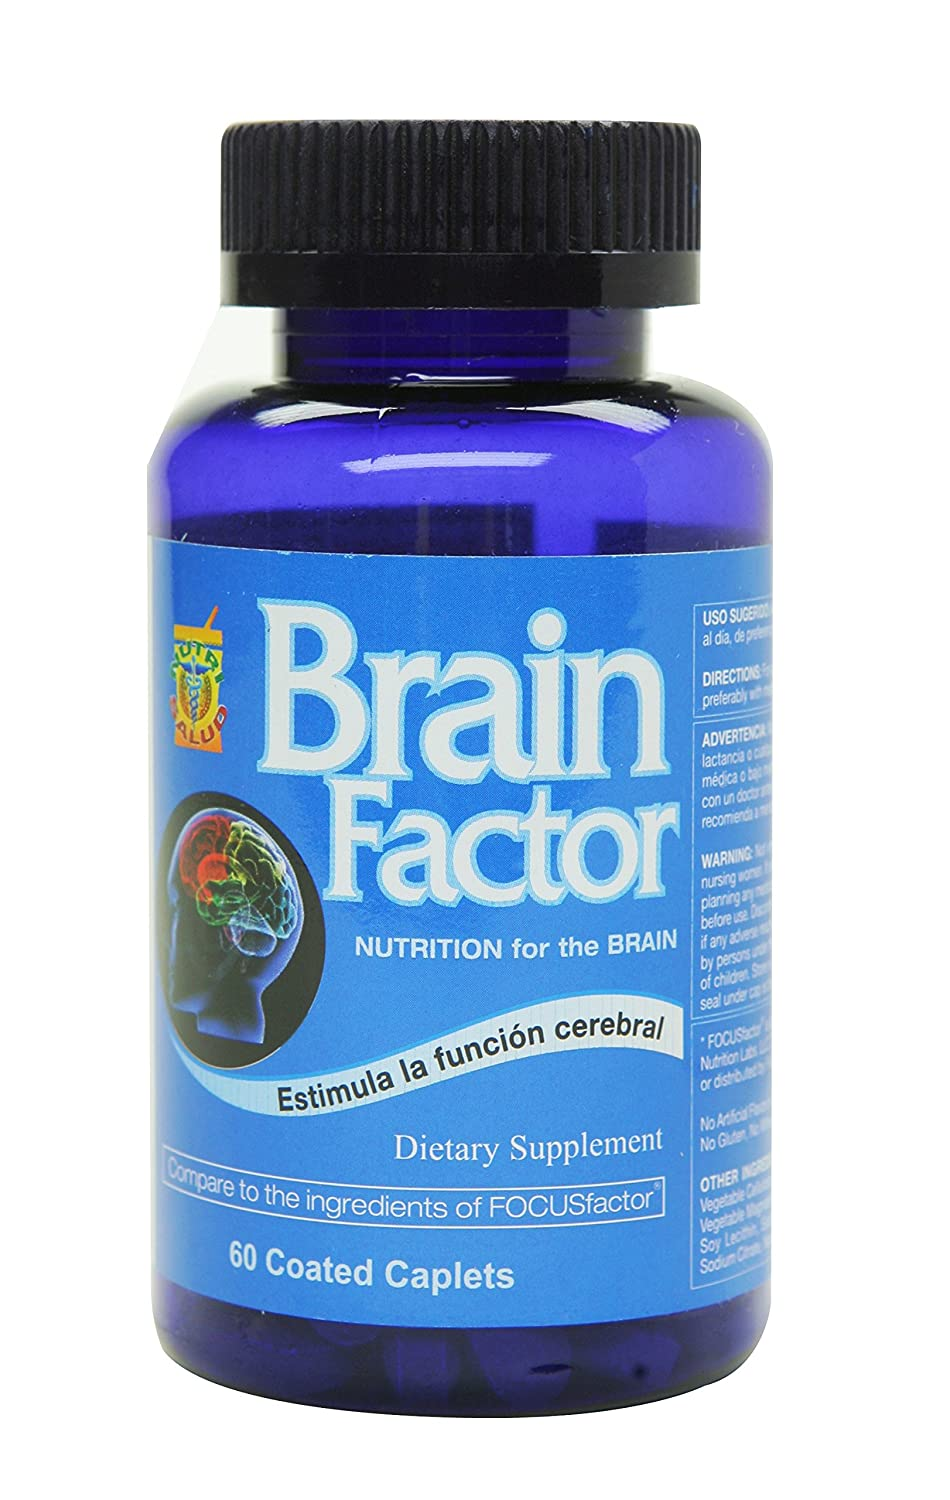 Amazon.com: Brain Factor Vitaminas para el cerebro, mejoran la ...